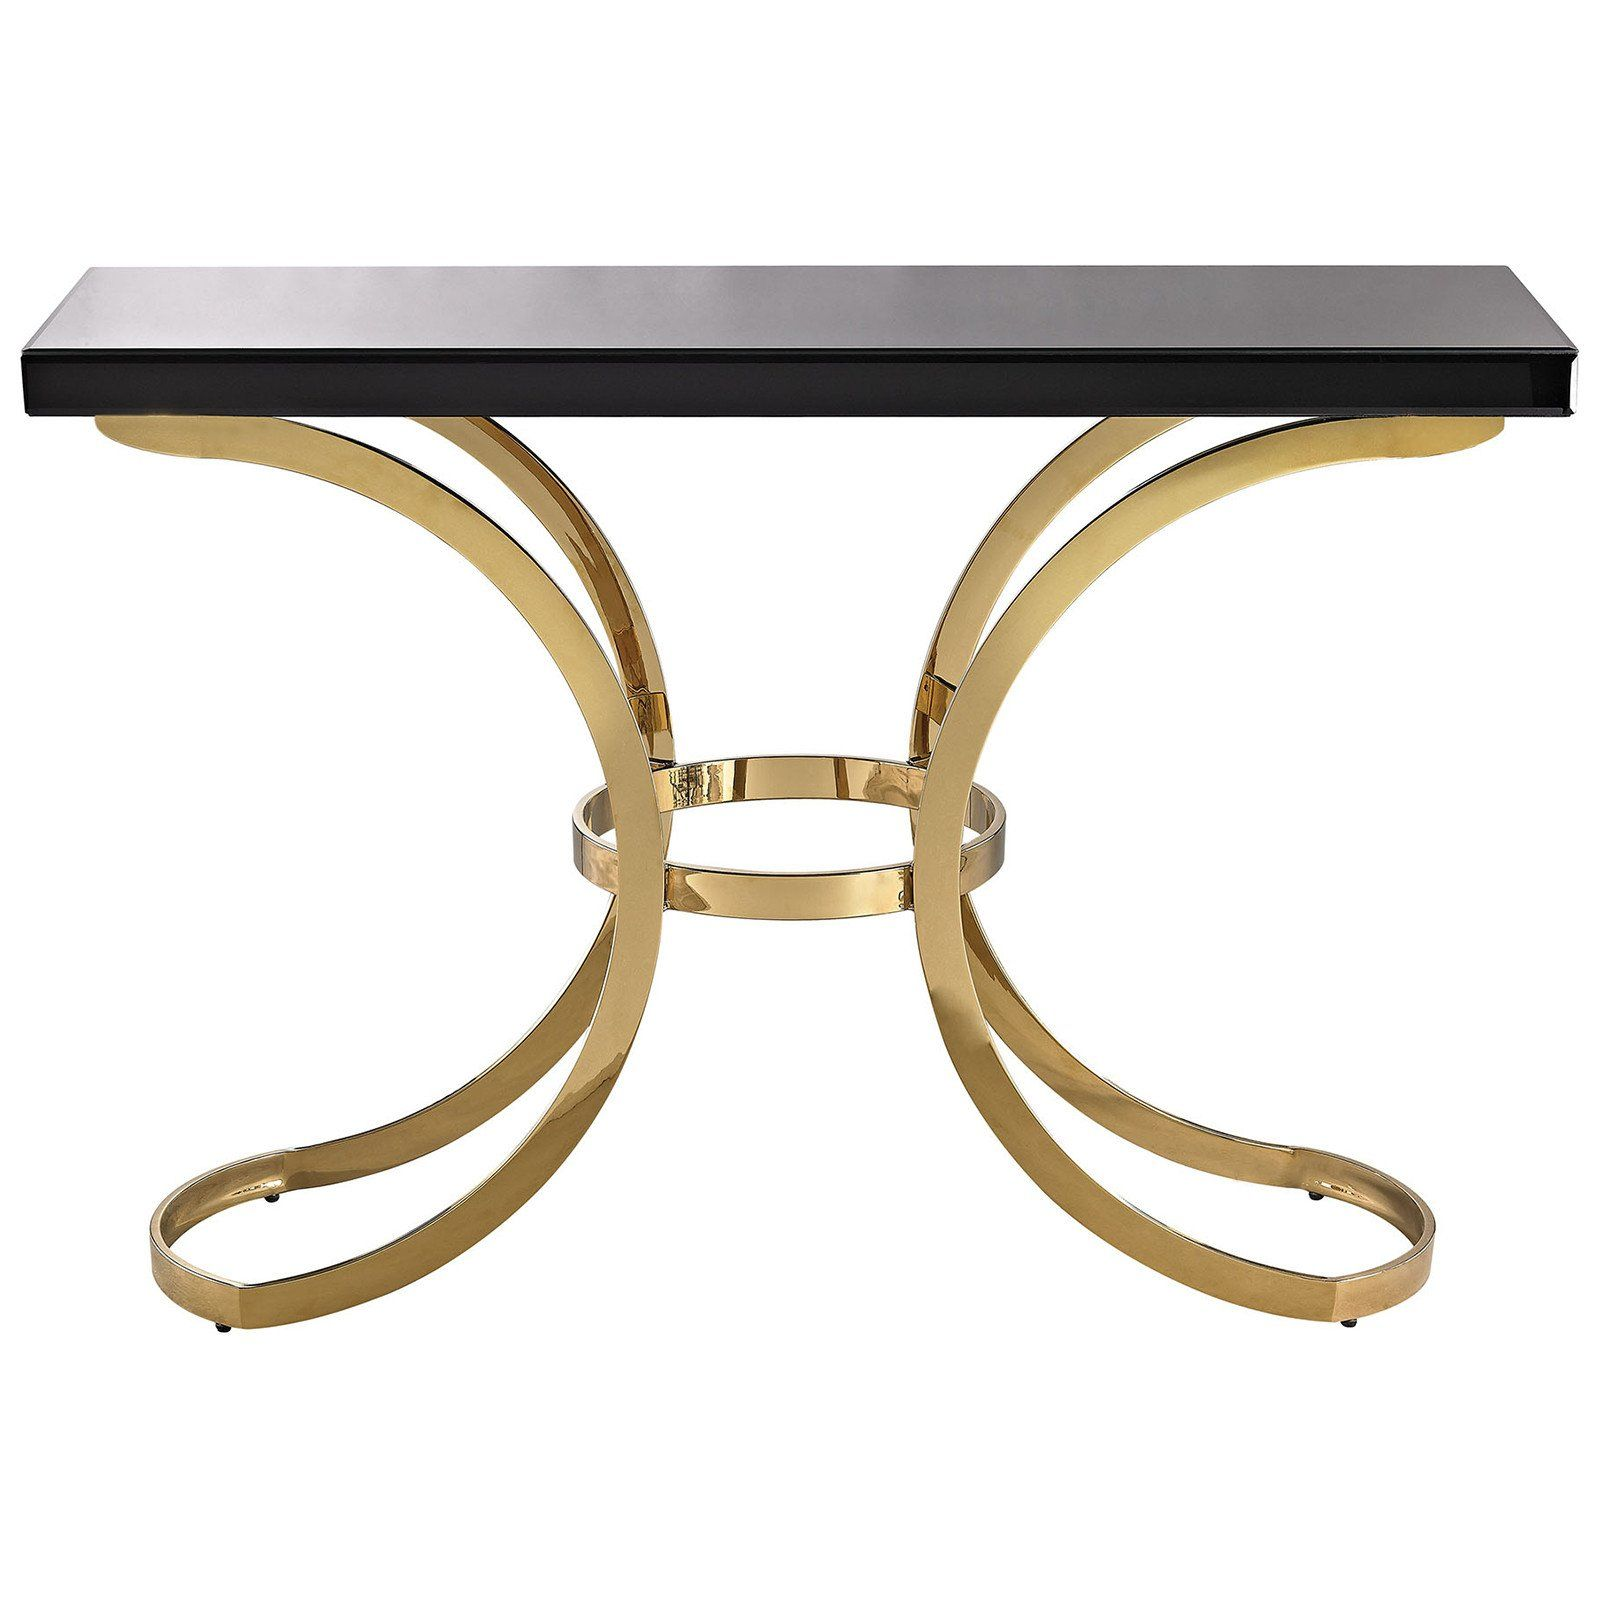 beacon towers console table in gold plate and black glass products rh pinterest co uk